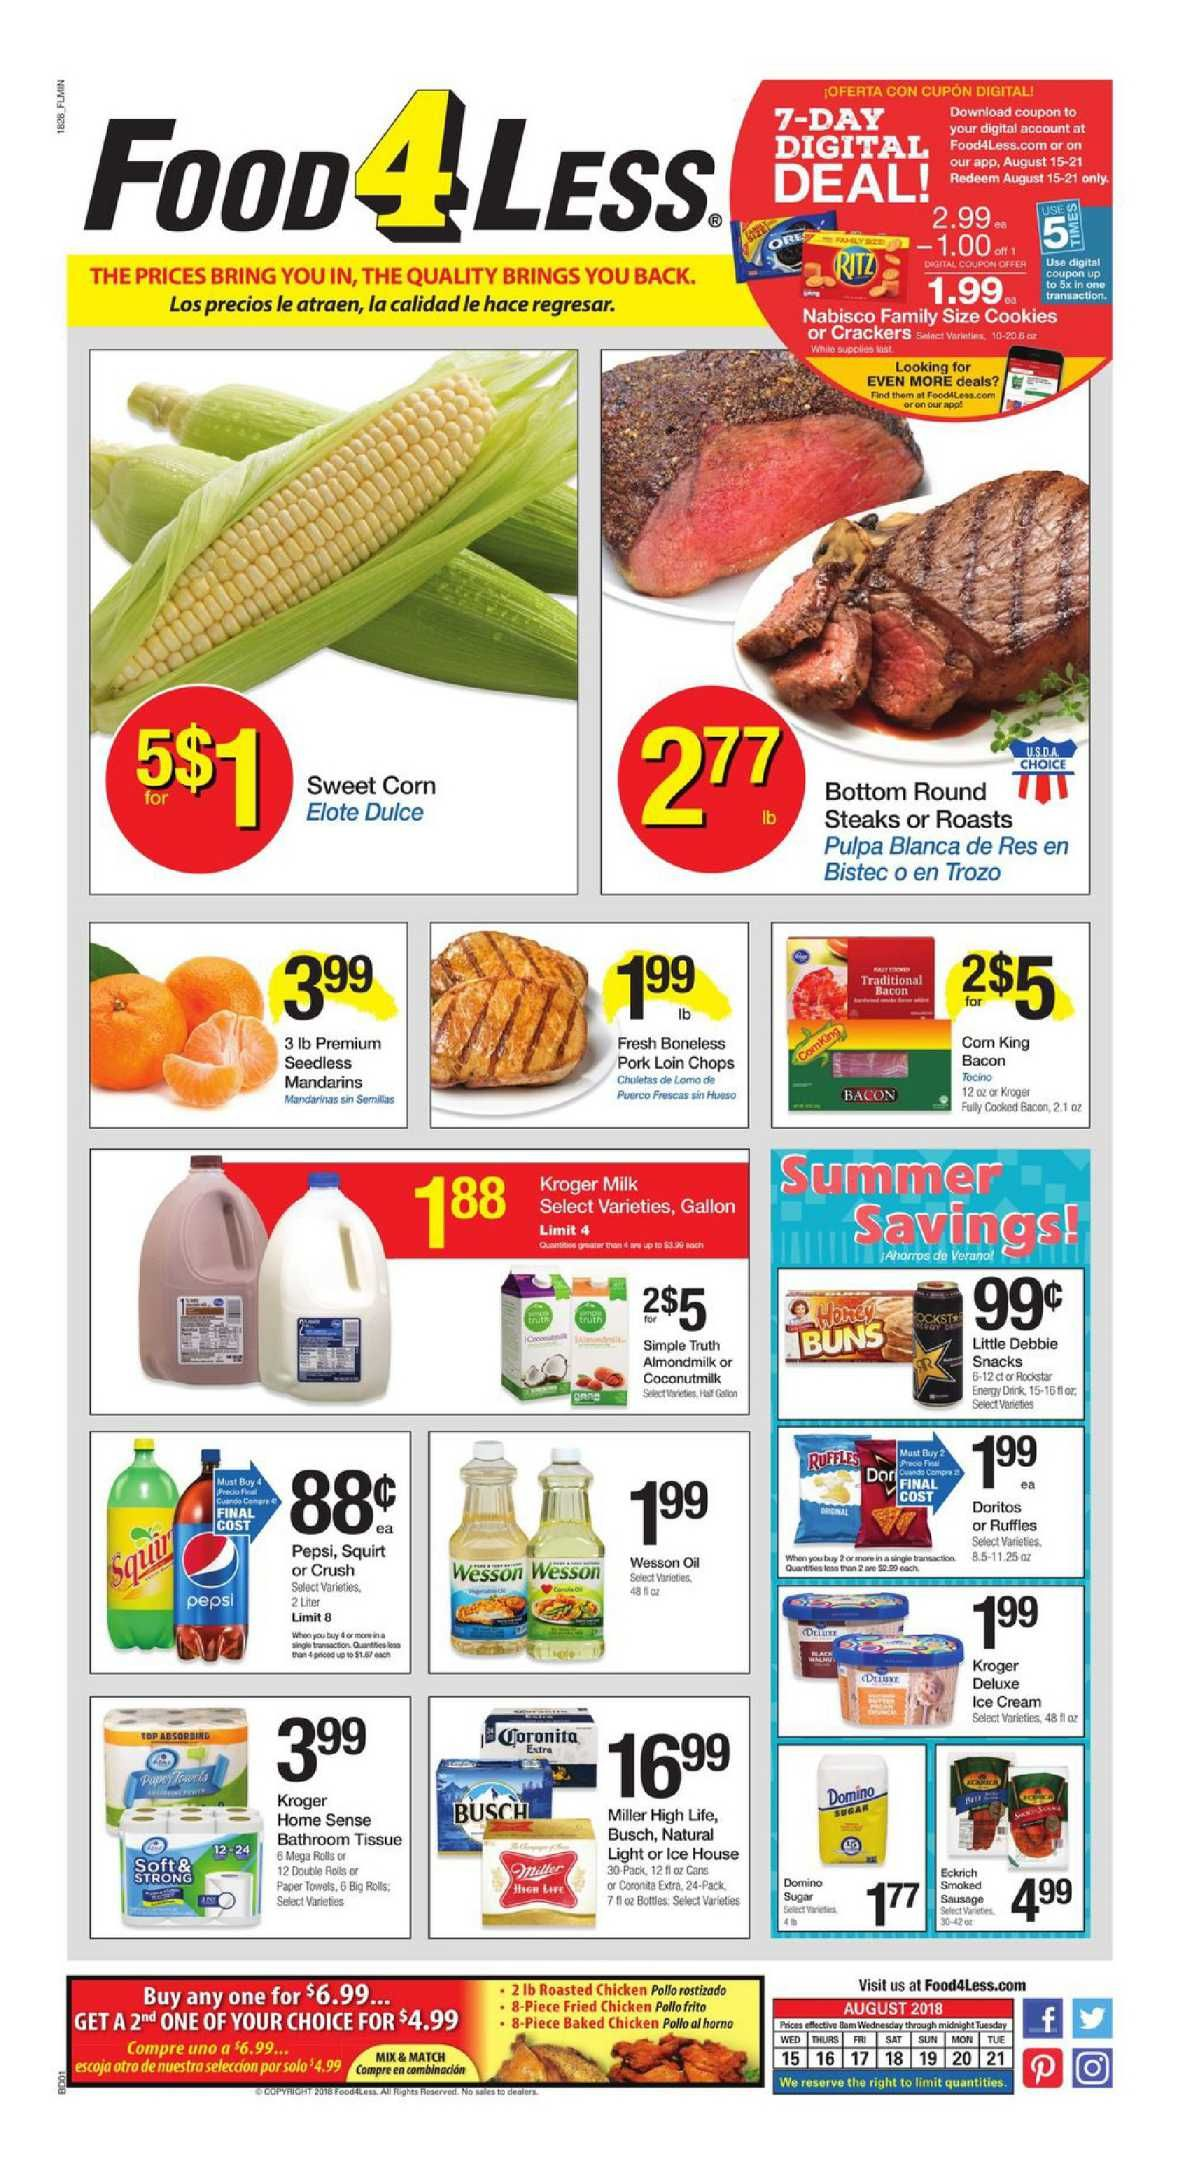 Food 4 Less Weekly Ad Flyer Mar 11 Mar 17, 2020